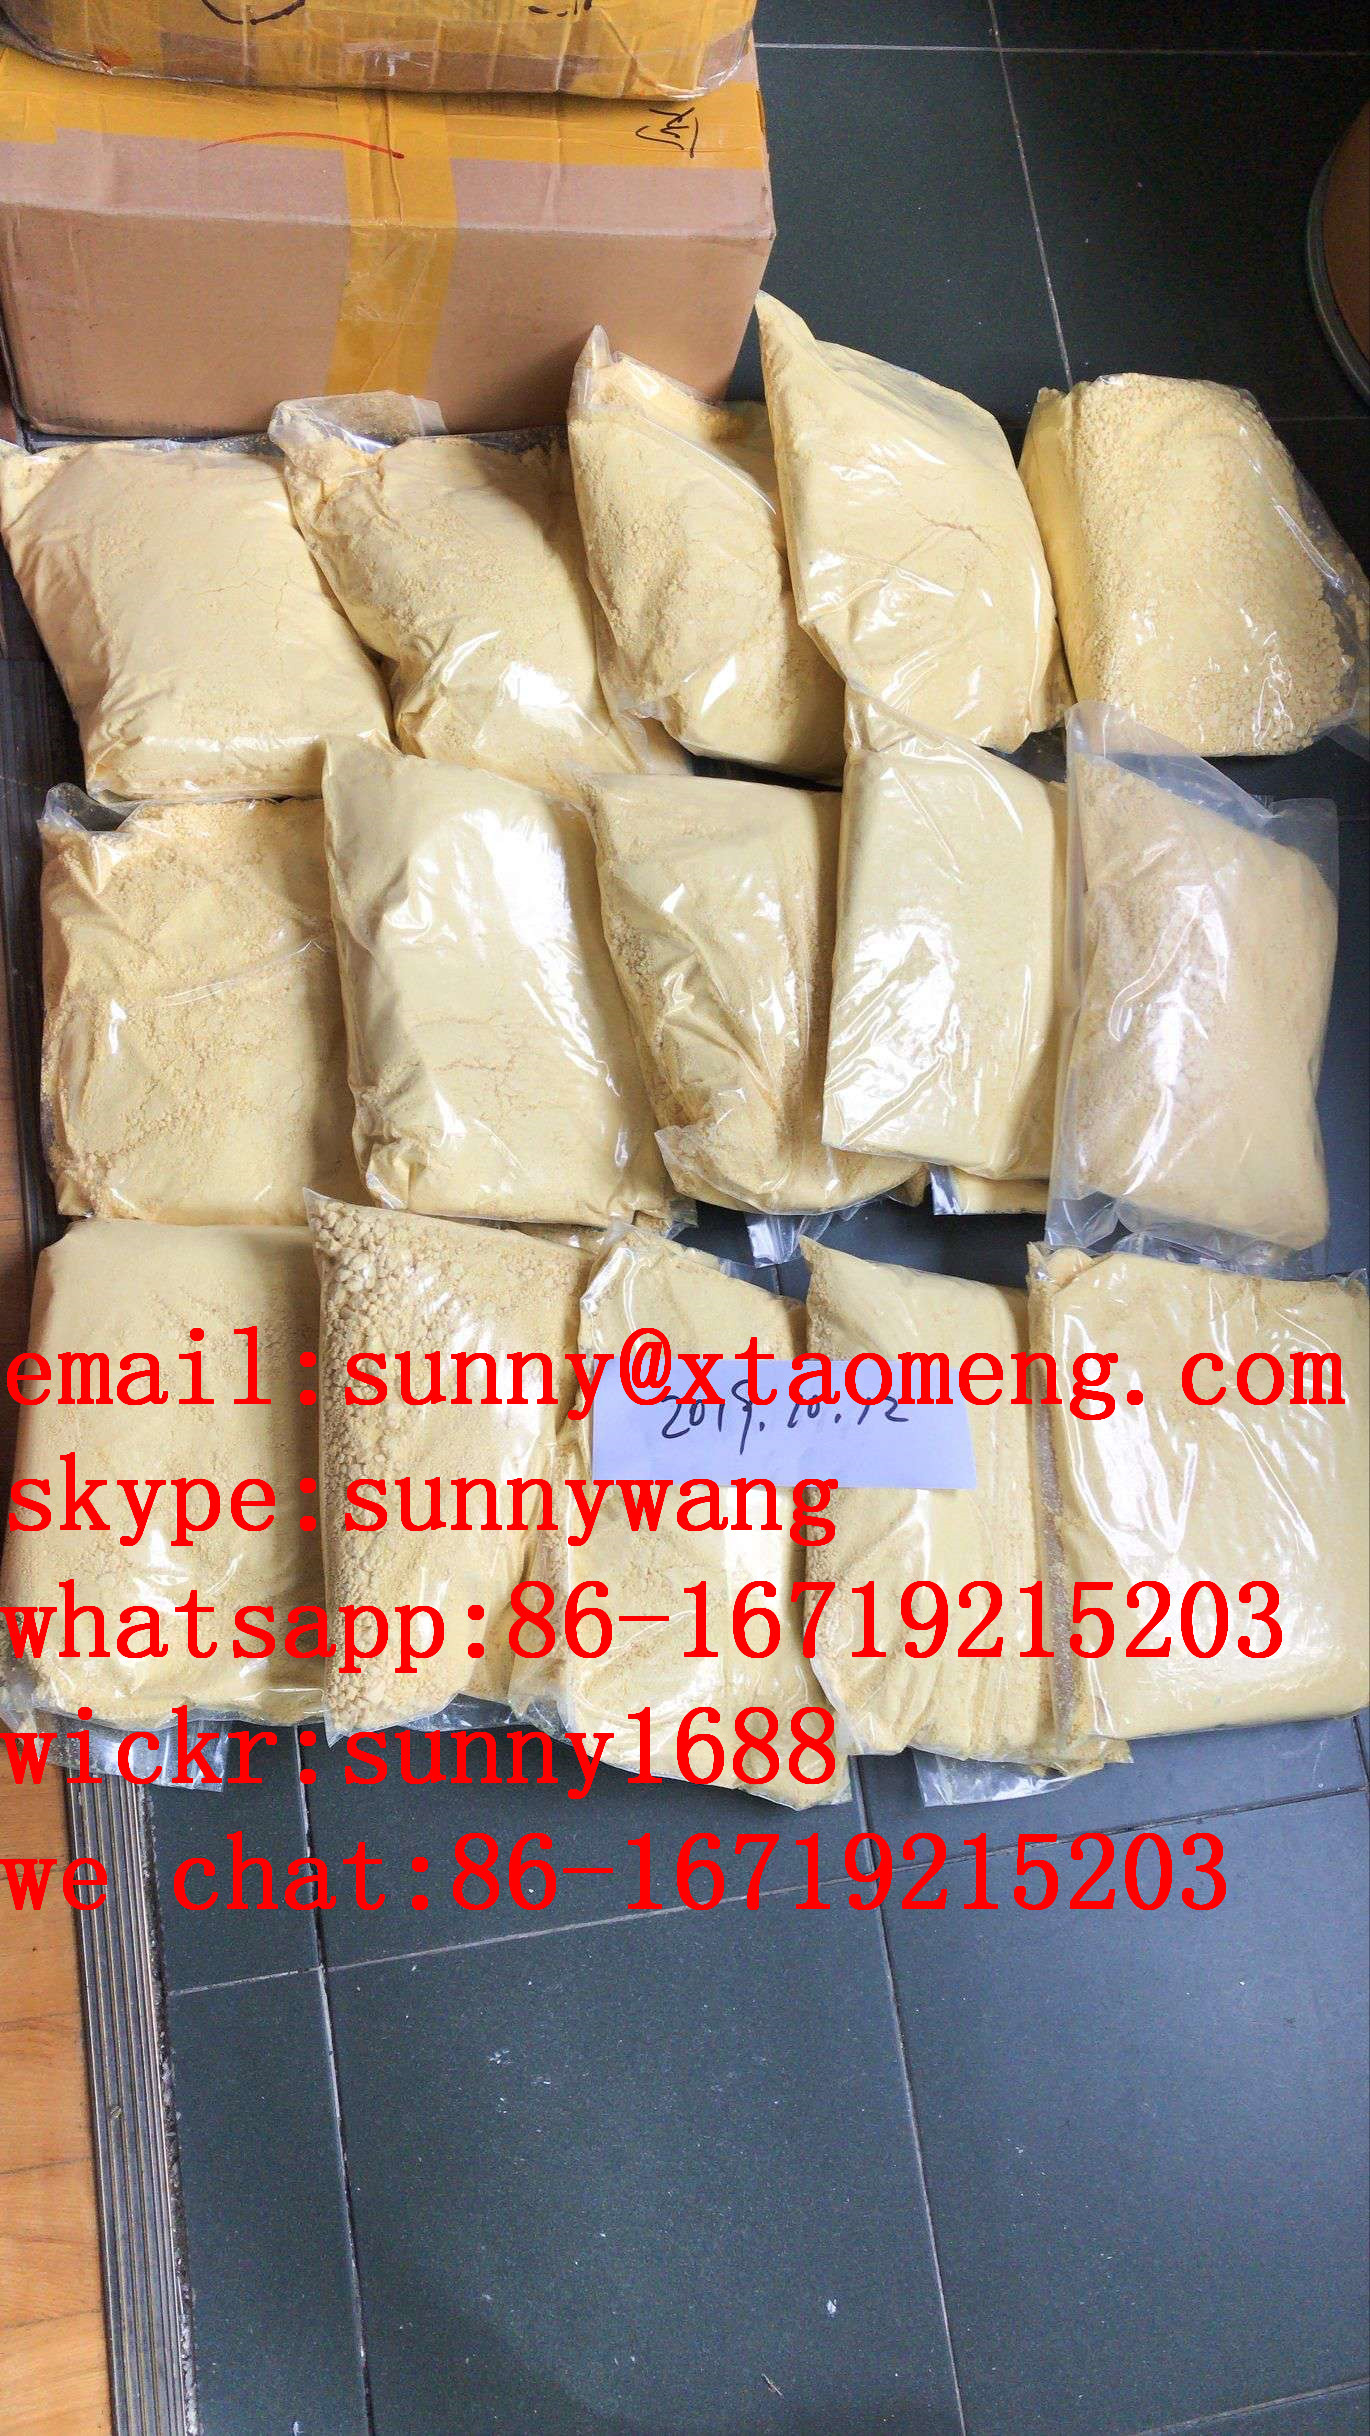 supply 5f-mdmb2201 5f adb 4fadb jwh018